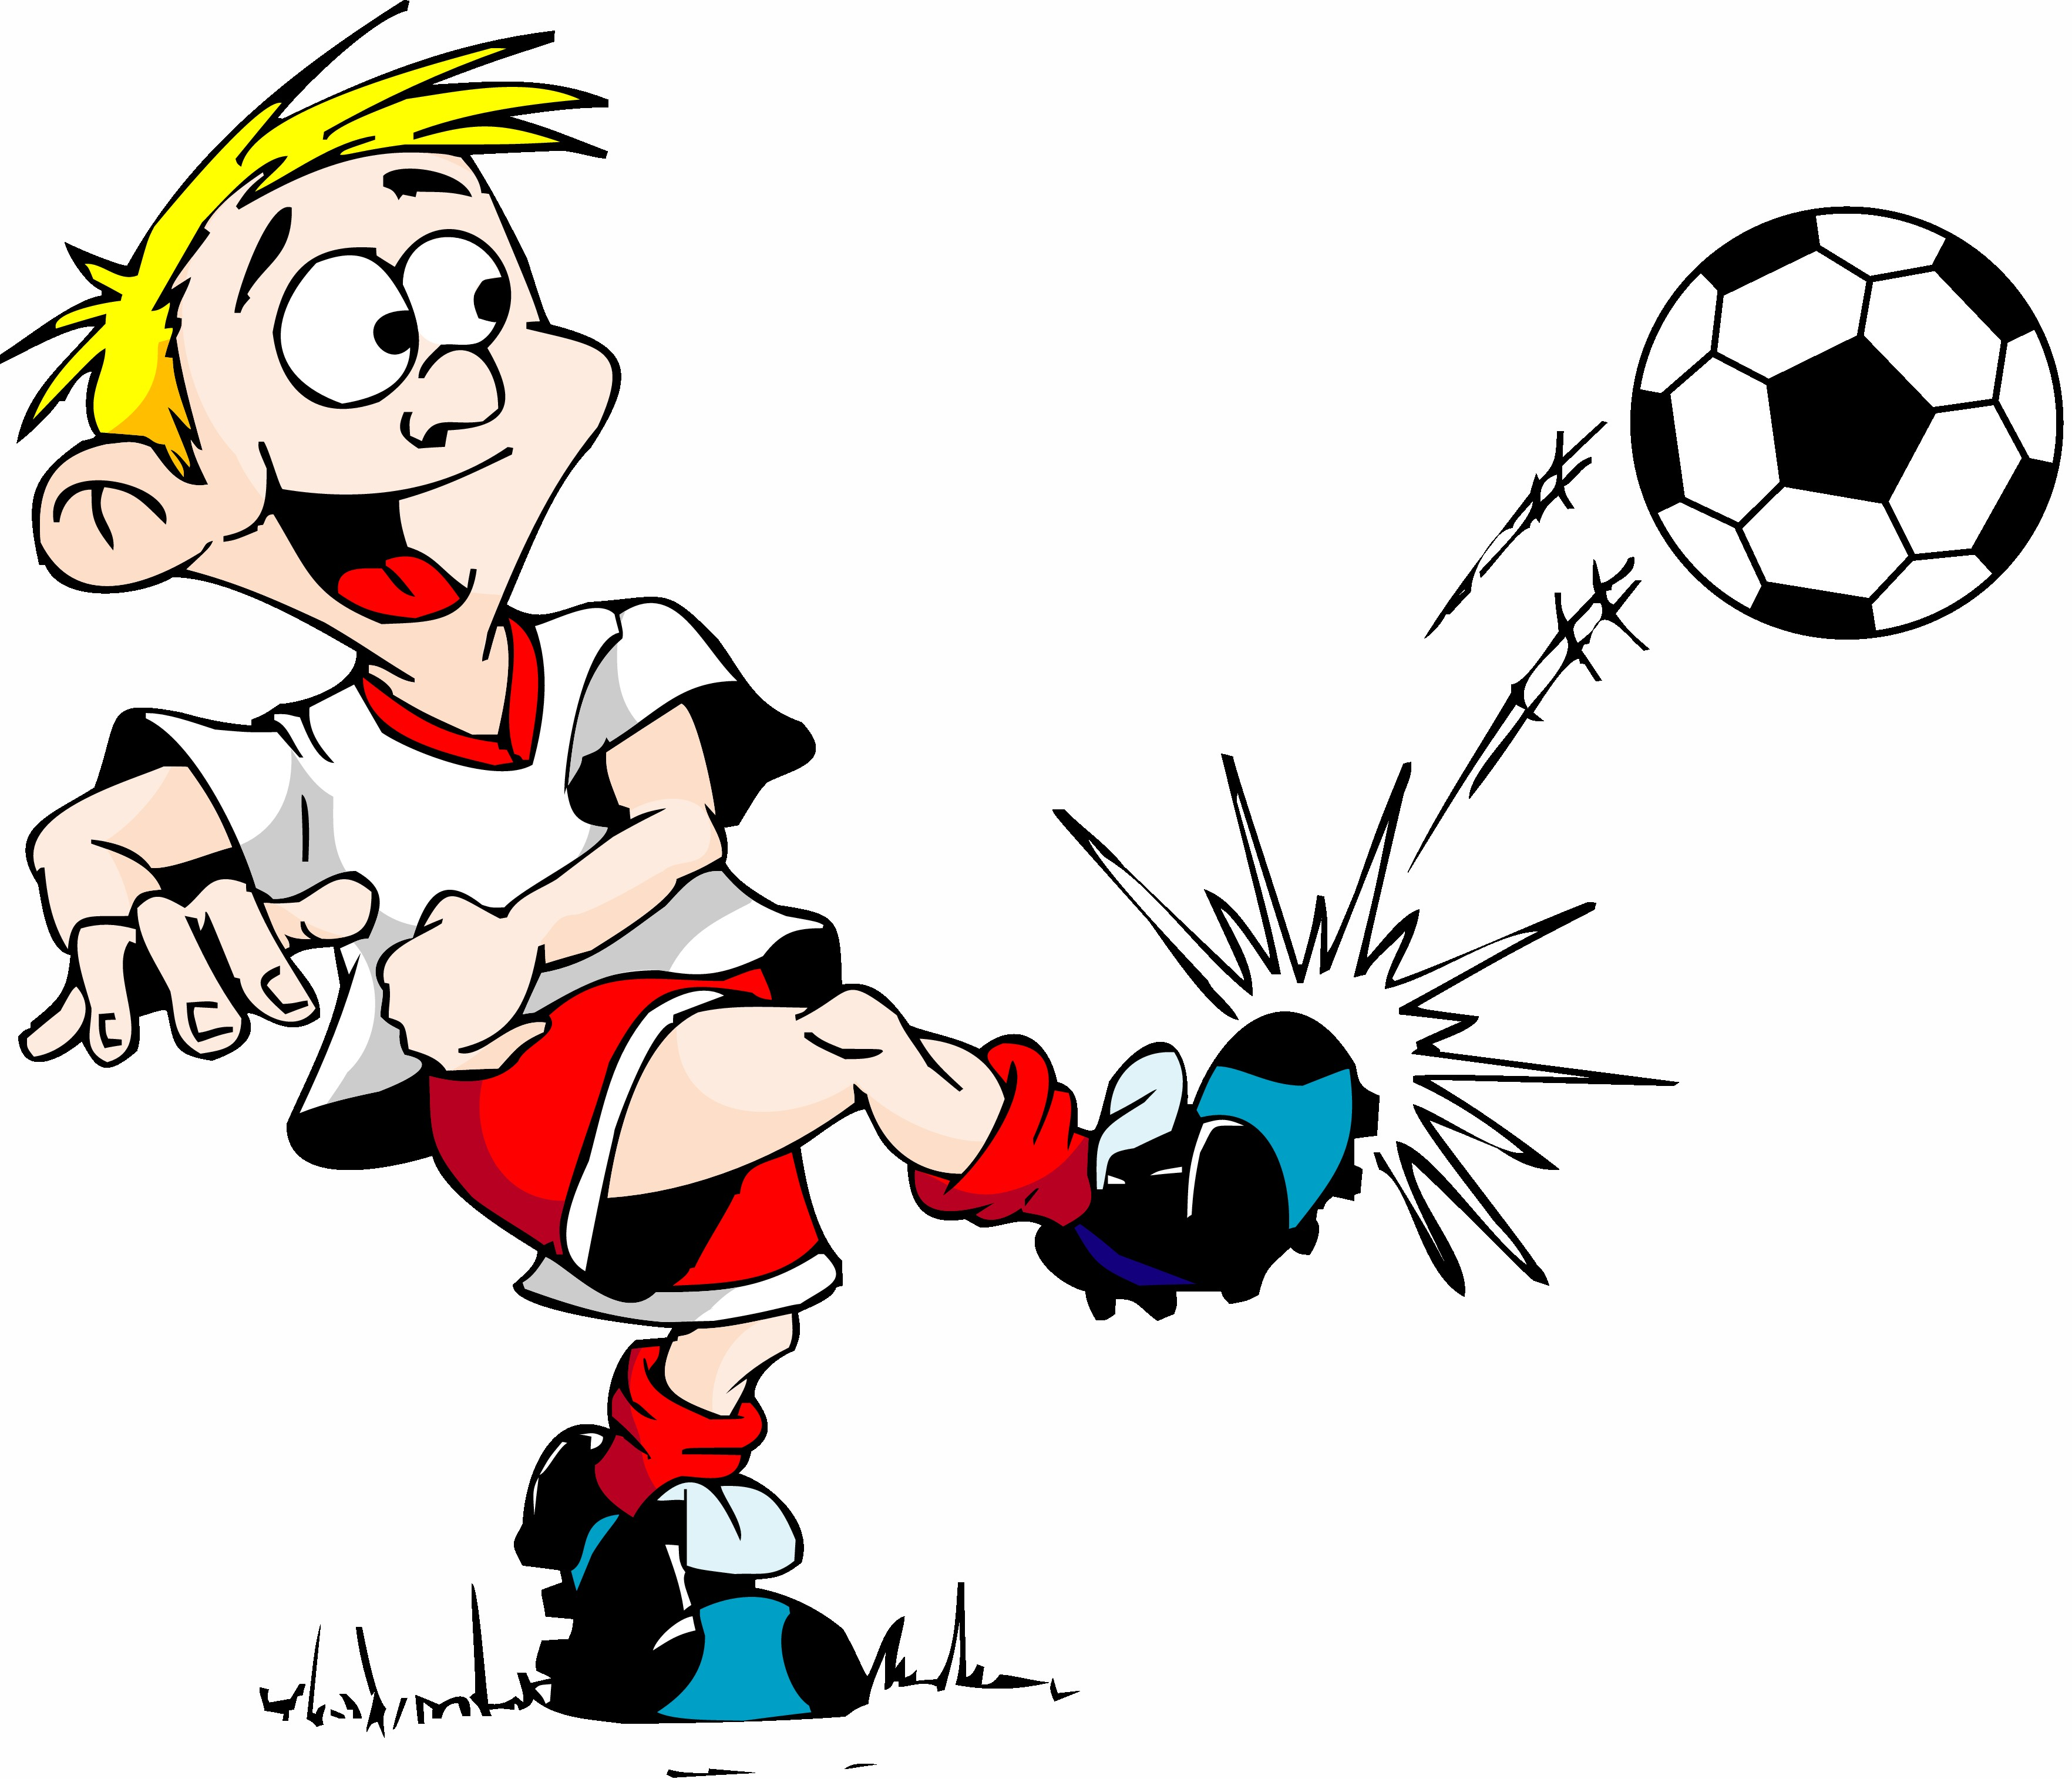 Soccer ball clipart goal jpg black and white download Soccer Ball Being Kicked Goal Cartoon | Free Download Clip Art ... jpg black and white download